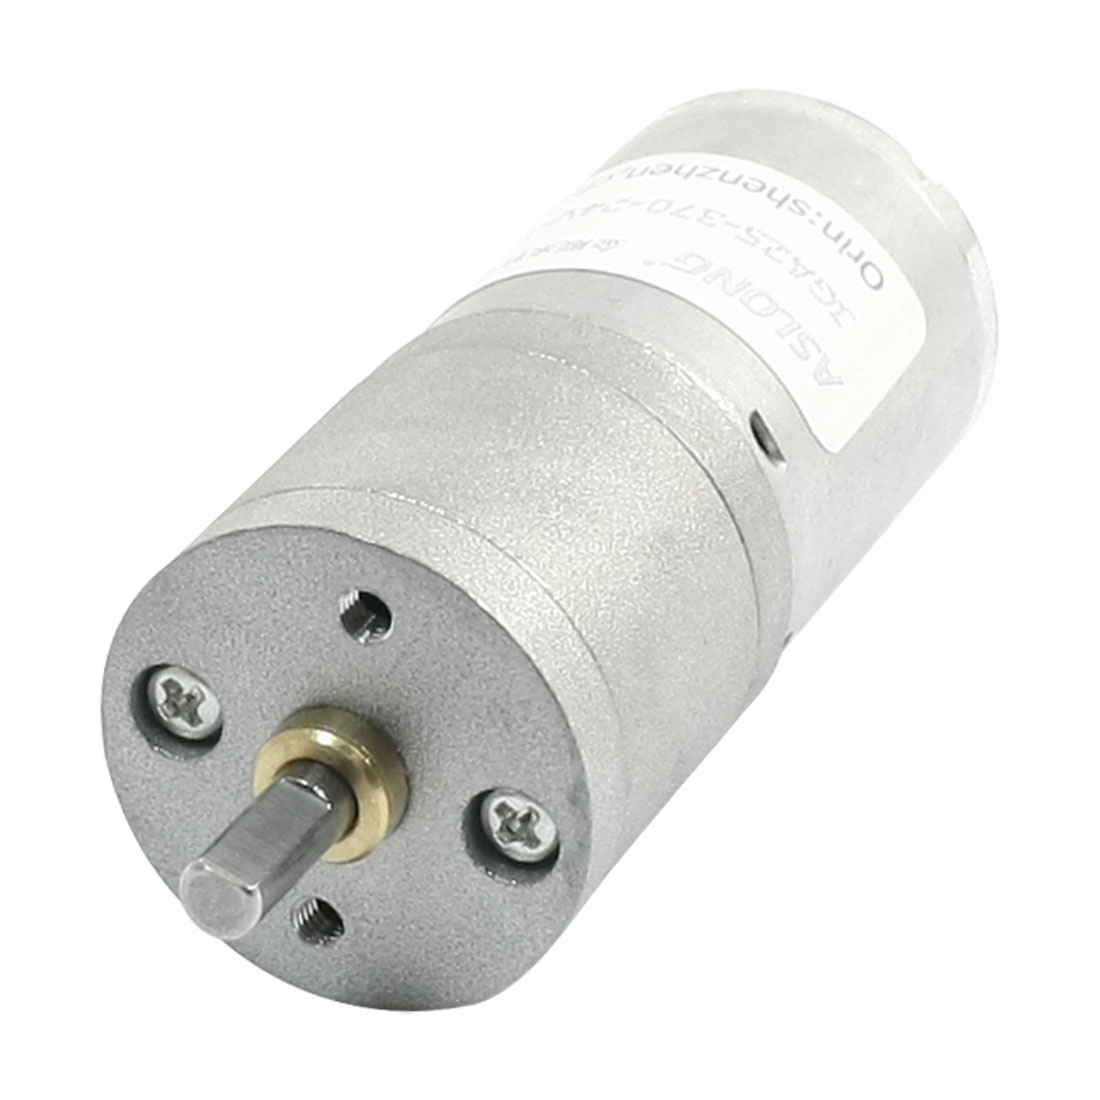 Unique Bargains GA25-370 24V 36r/min 2 Terminal Soldering Speed Reducing DC Gear Motor